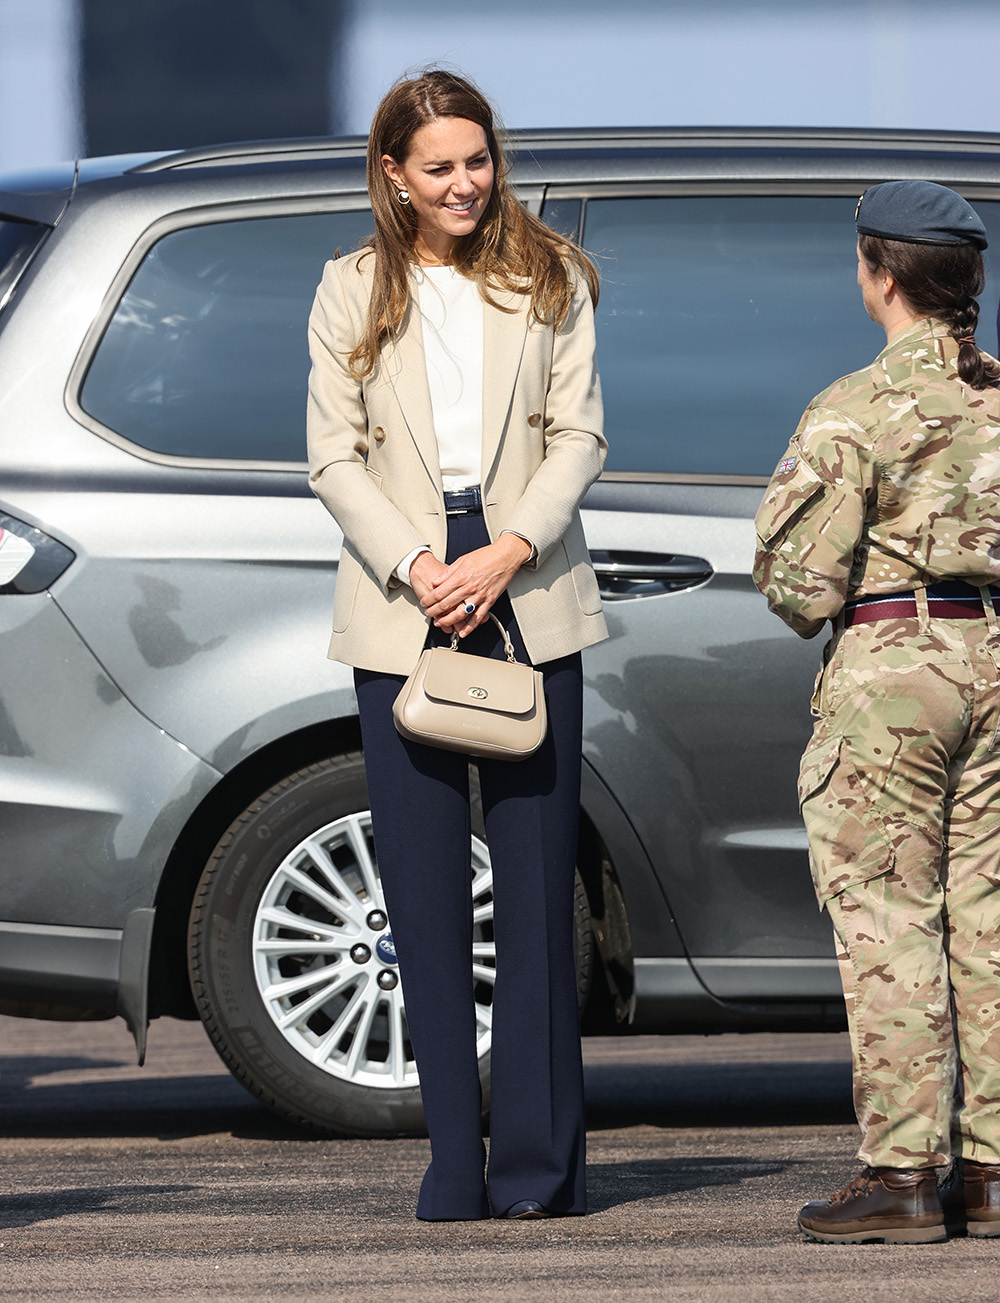 BRIZE NORTON, ENGLAND - SEPTEMBER 15: Catherine, Duchess of Cambridge arrives to meet those who supported the UK's evacuation of civilians from Afghanistan, at RAF Brize Norton on September 15, 2021 in Brize Norton, England. Operation PITTING, the largest humanitarian aid operation for over 70 years, ran between 14th and 28th August, where in excess of 15,000 people were flown out of Kabul by the Royal Air Force. (Photo by Chris Jackson/Getty Images)